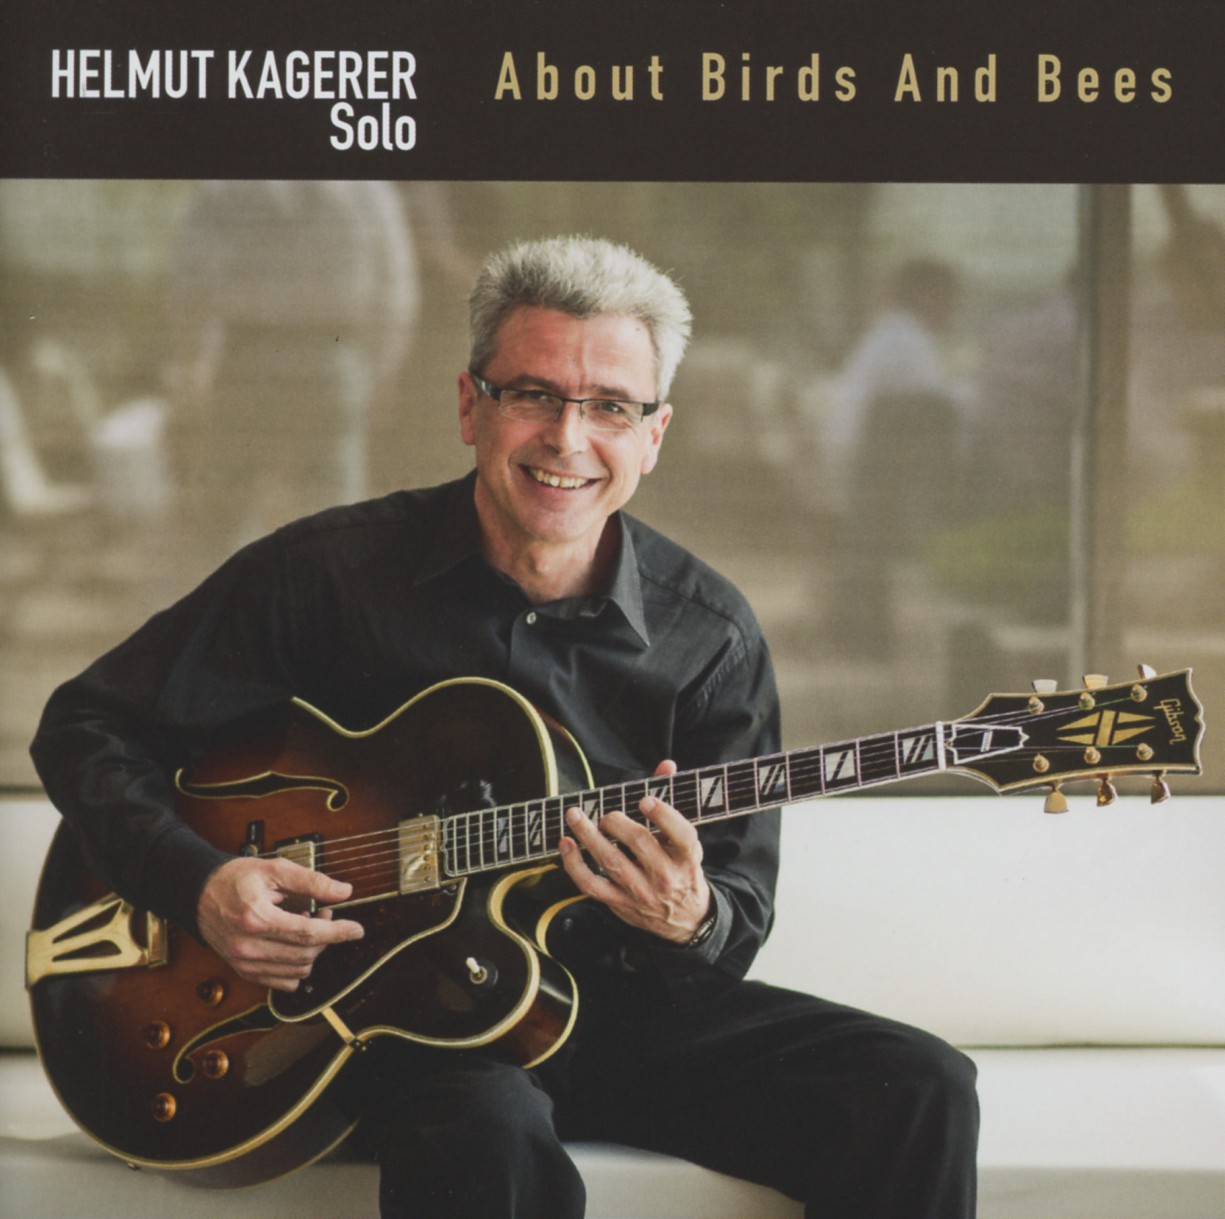 HELMUT KAGERER - ABOUT BIRDS AND BEES